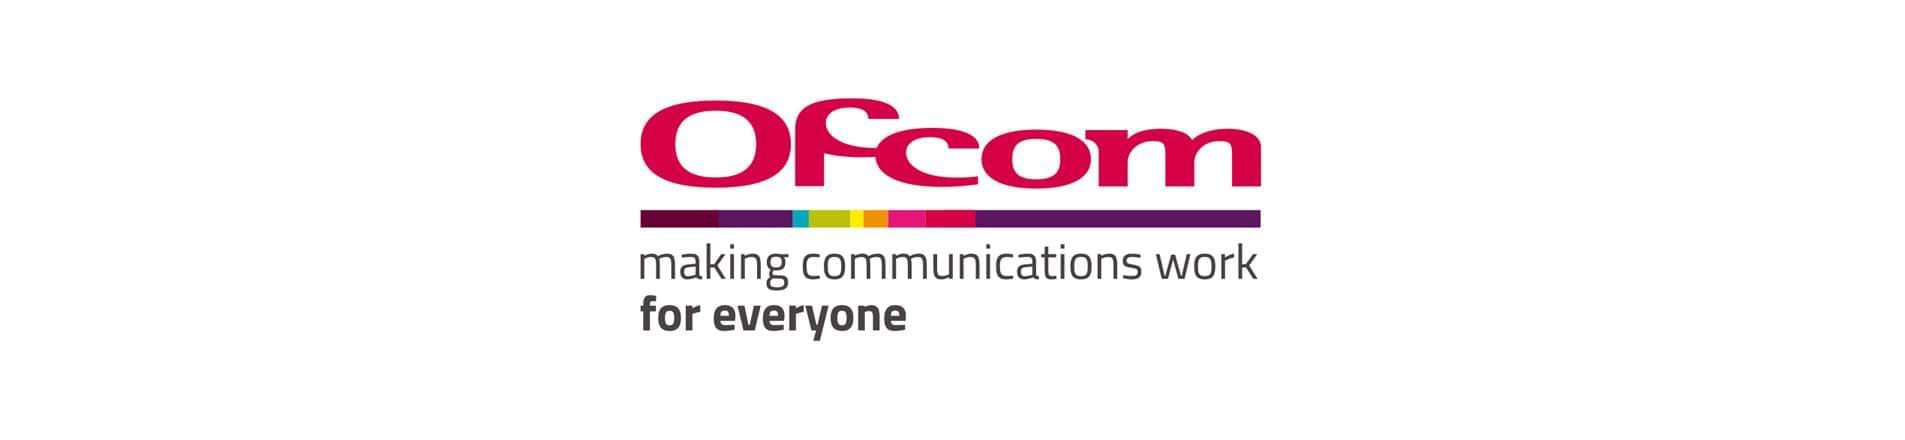 Ofcom Logo with the text 'Making Communications Work for Everyone'.